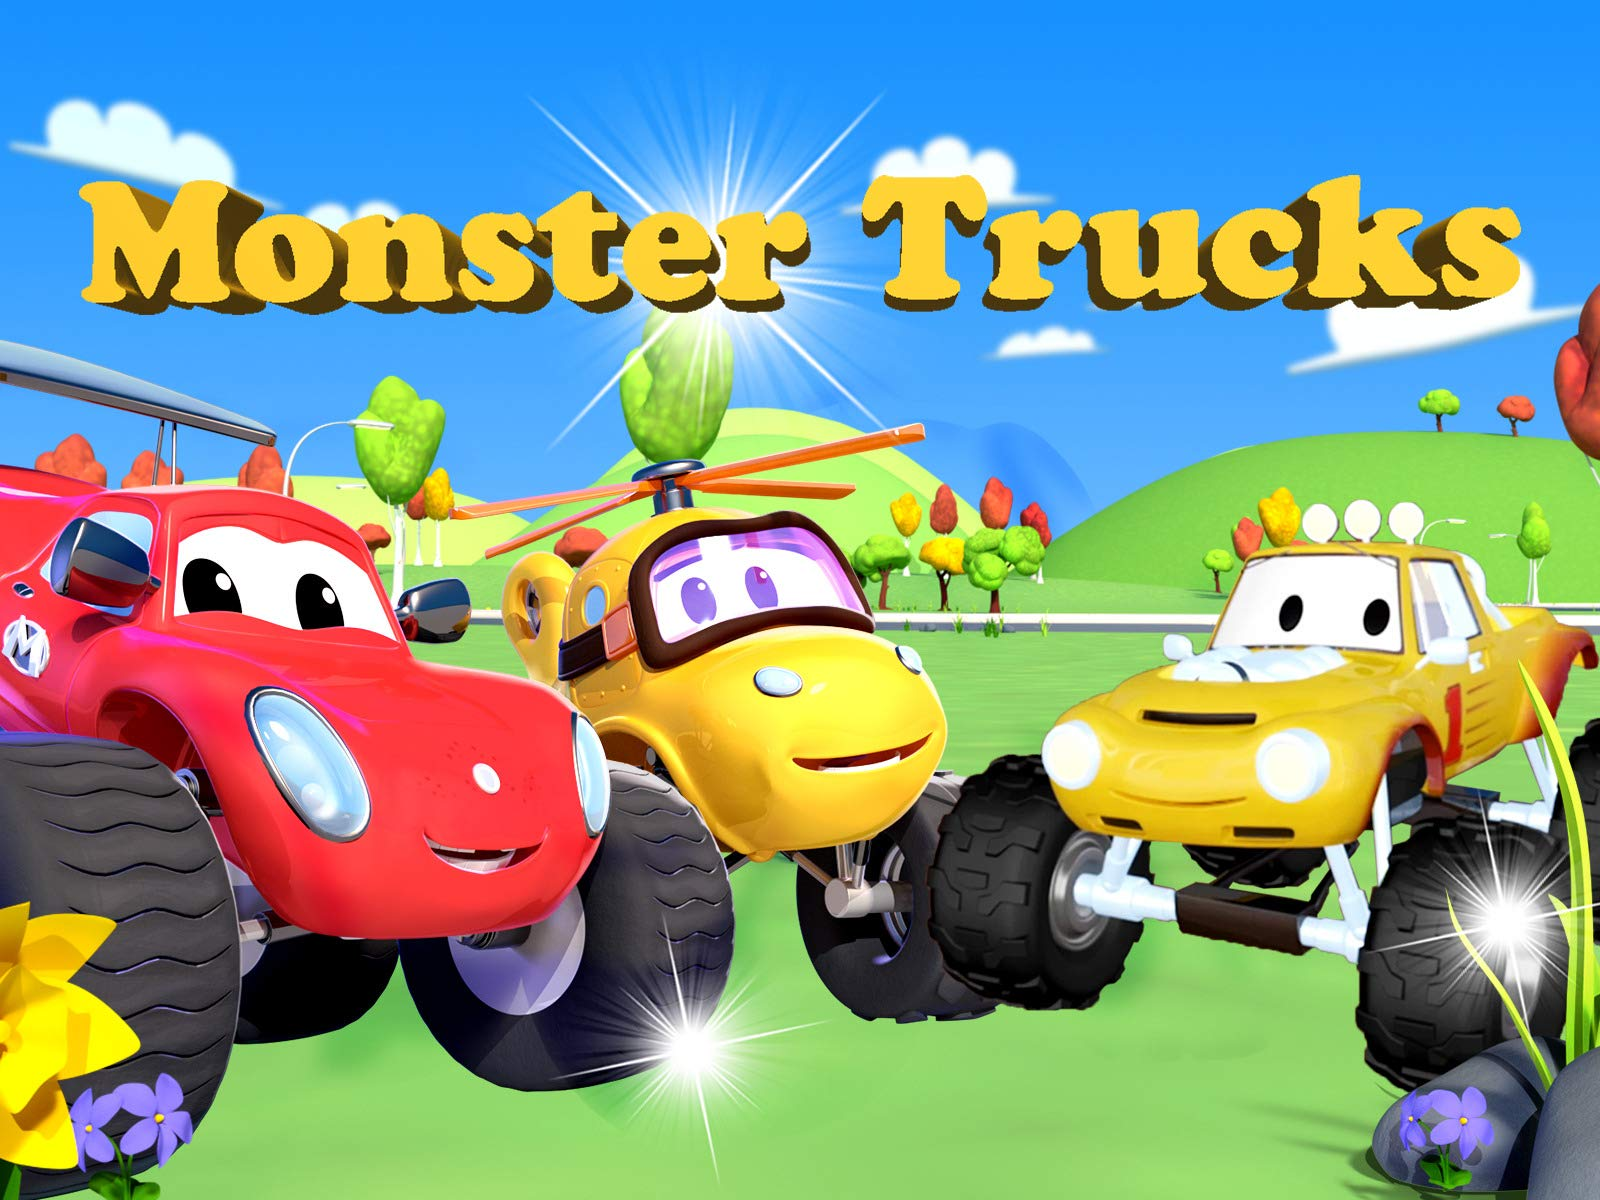 Watch Monster Trucks Truck Cartoon For Kids Prime Video